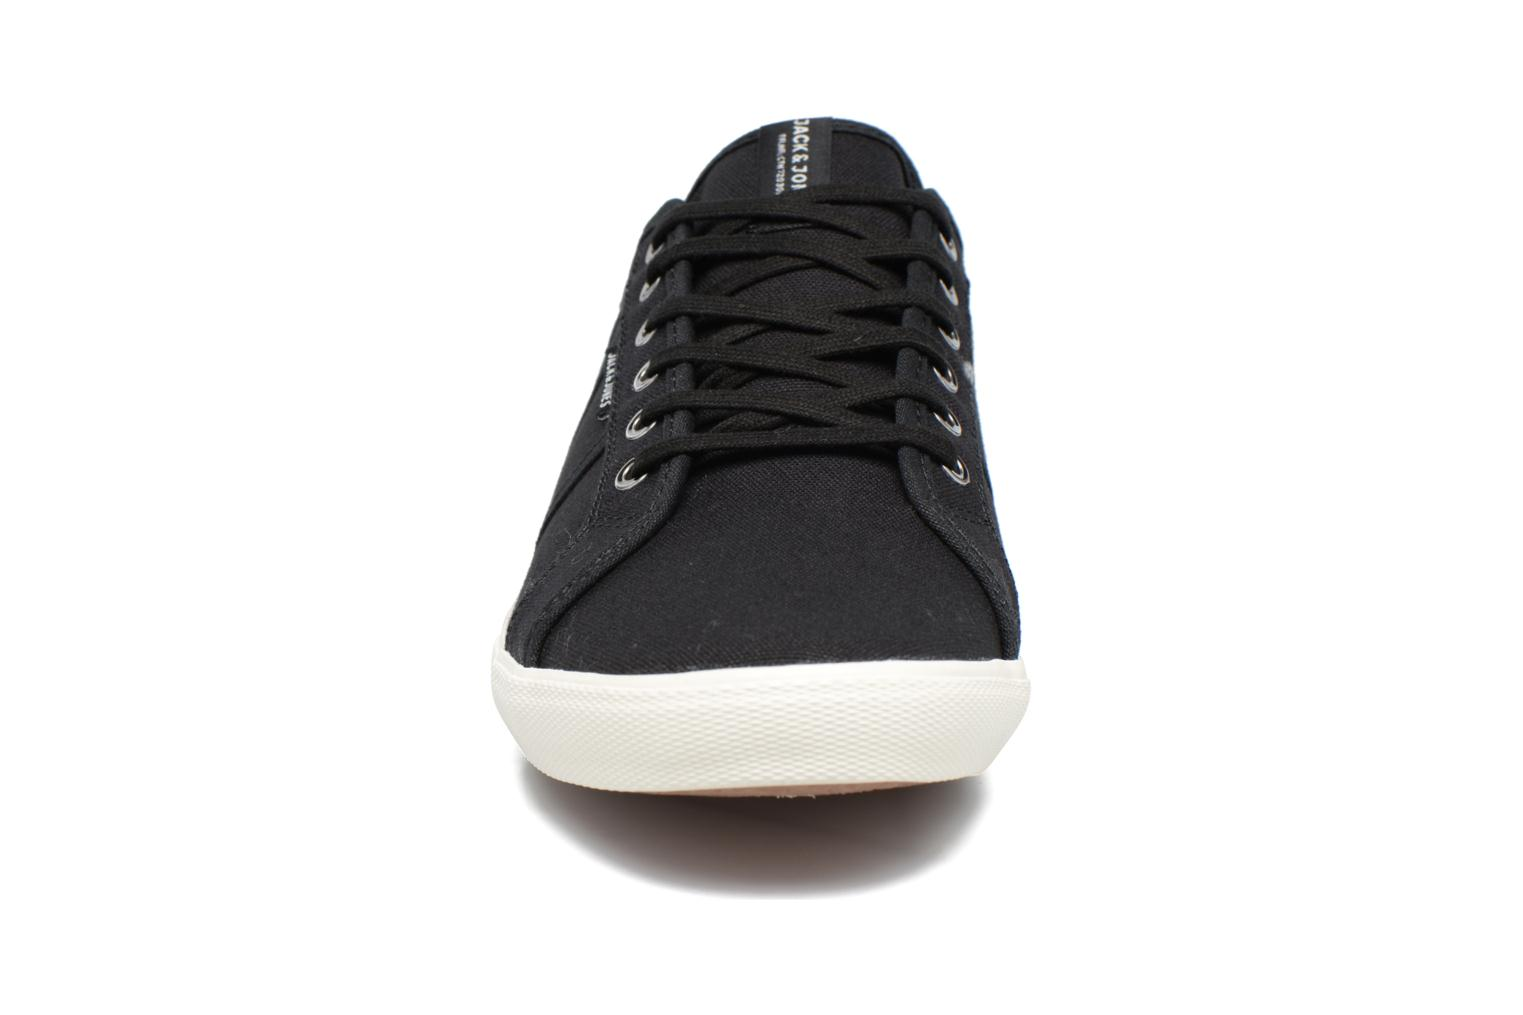 JFWROSS Anthracite